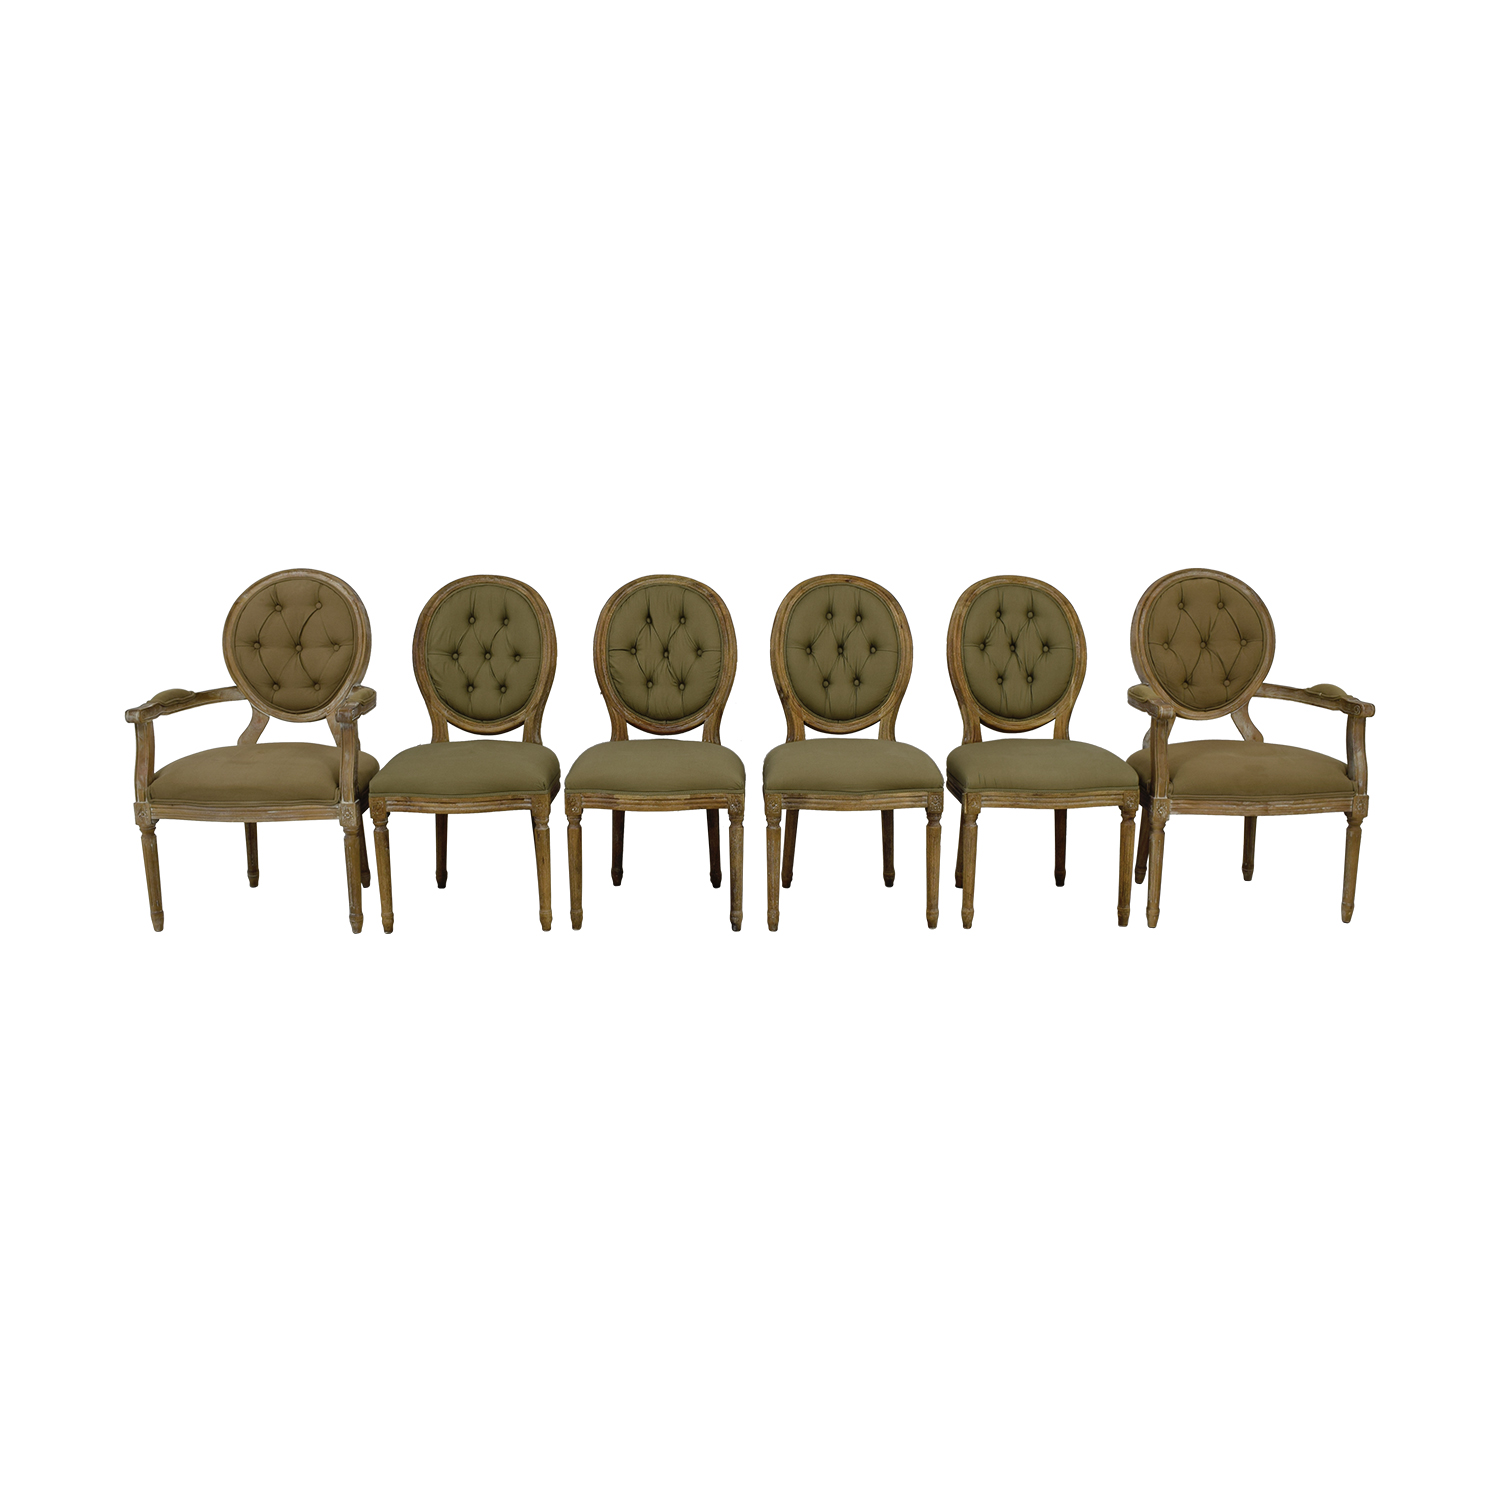 Horchow Horchow Blanchette Tufted Side Chairs and Arm Chairs